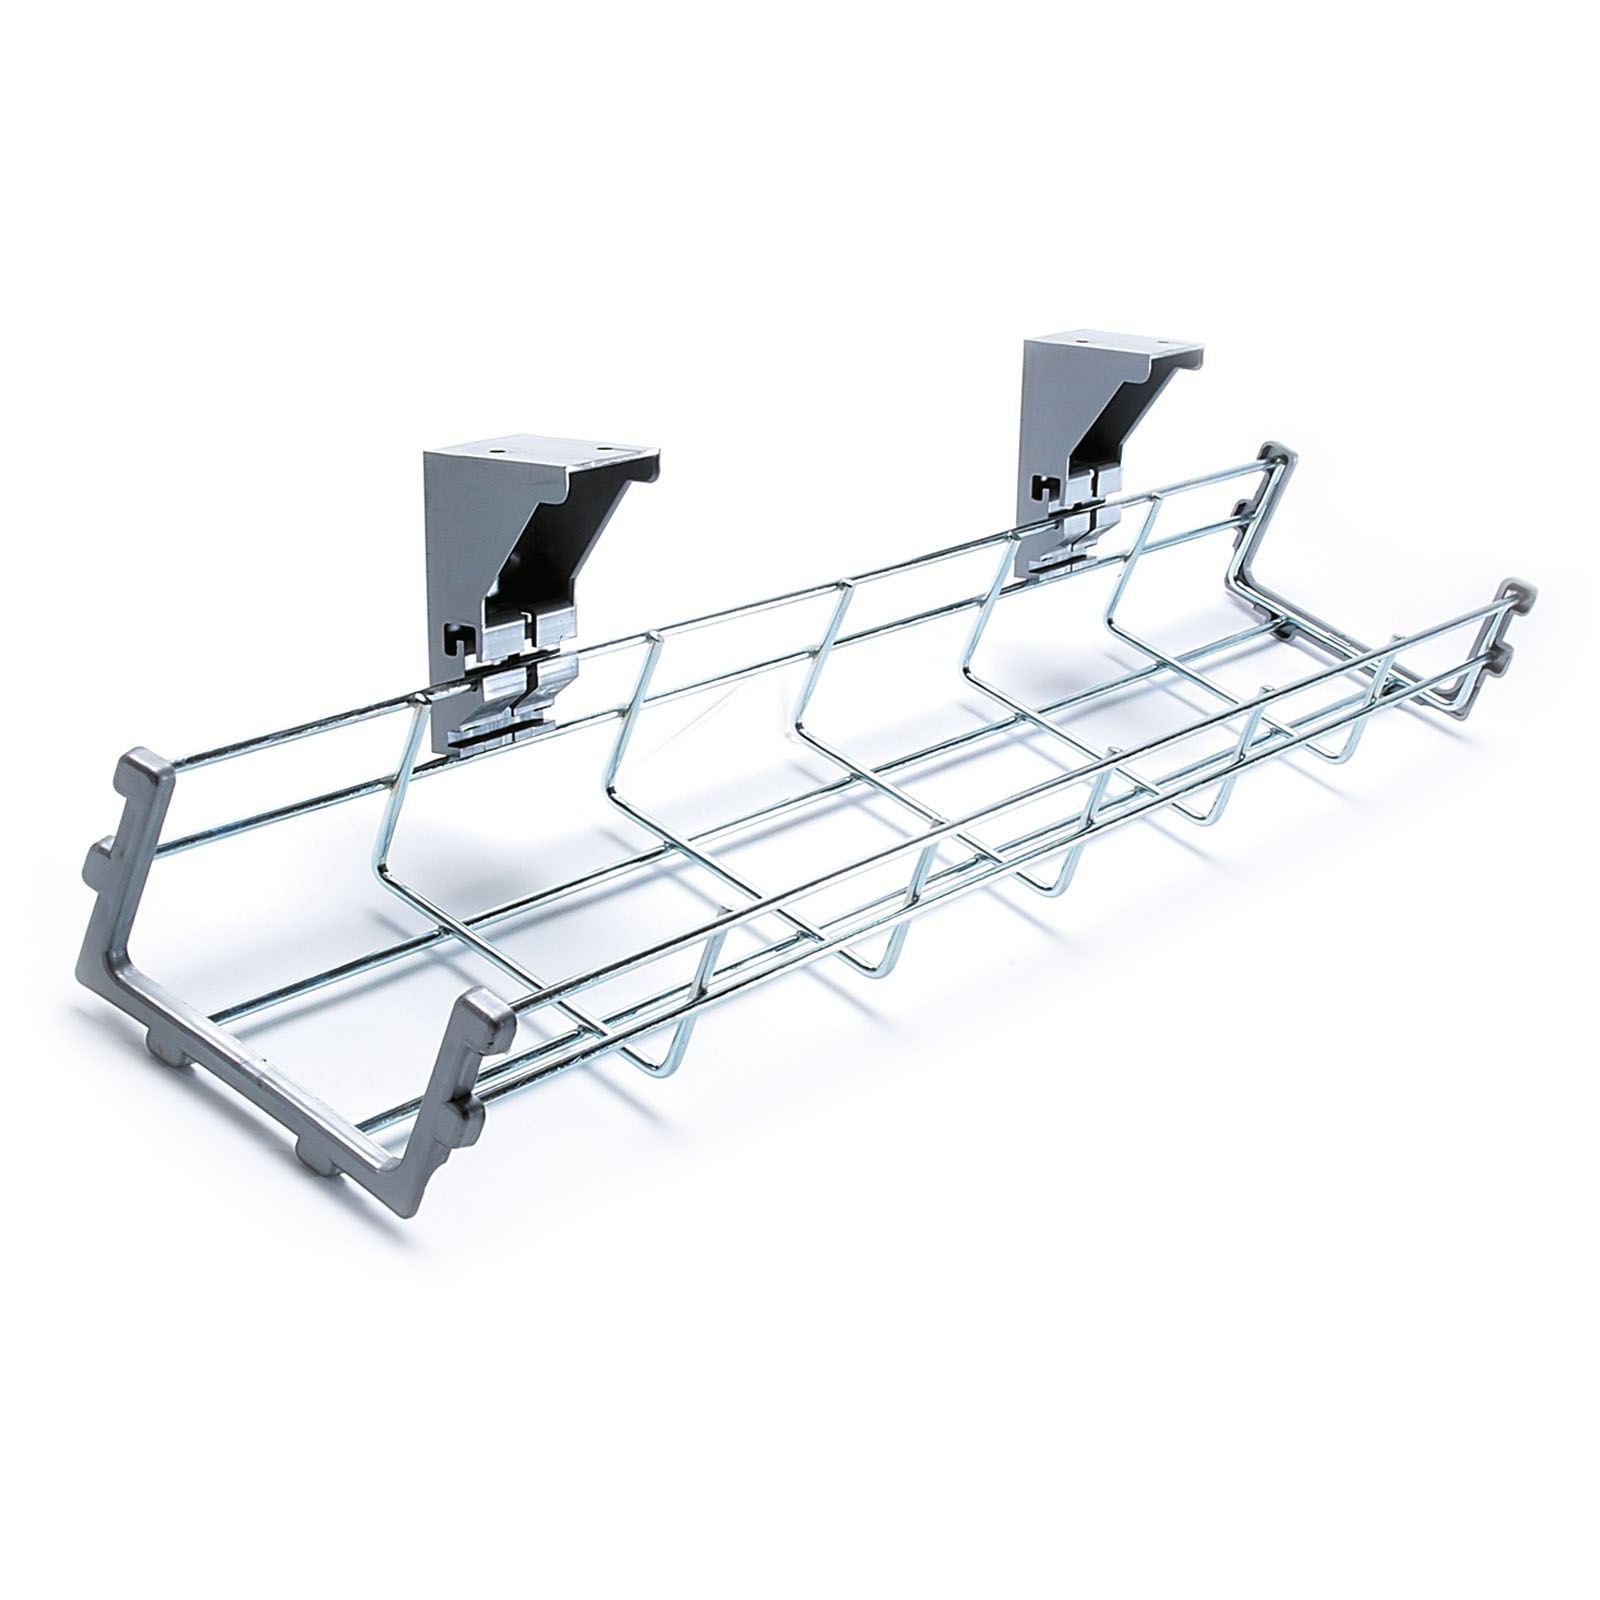 Cable Tidies Cable management tray